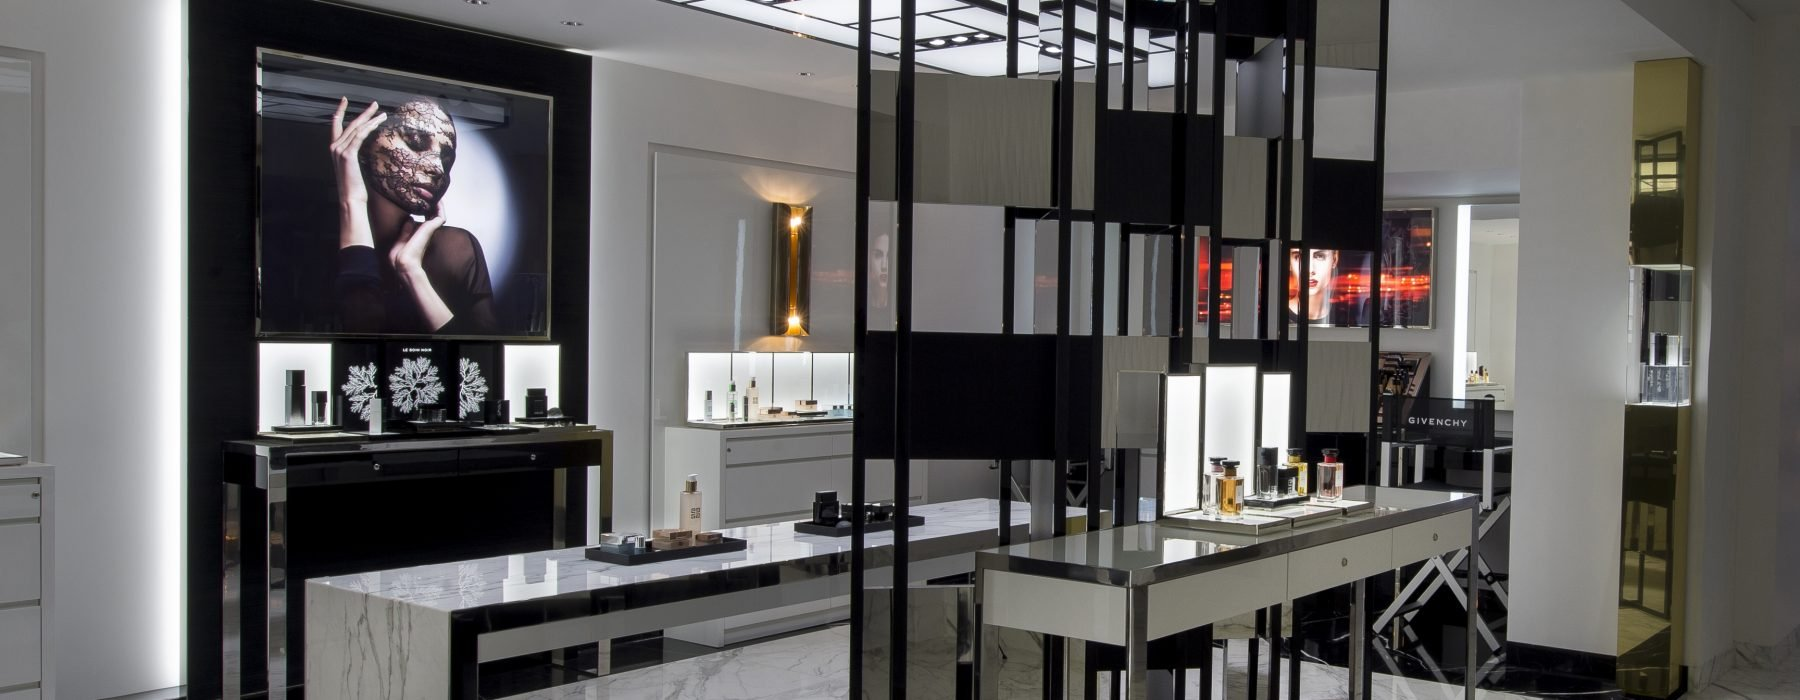 Spa-Metropole-Givenchy-tienda-TheLuxuryTrends